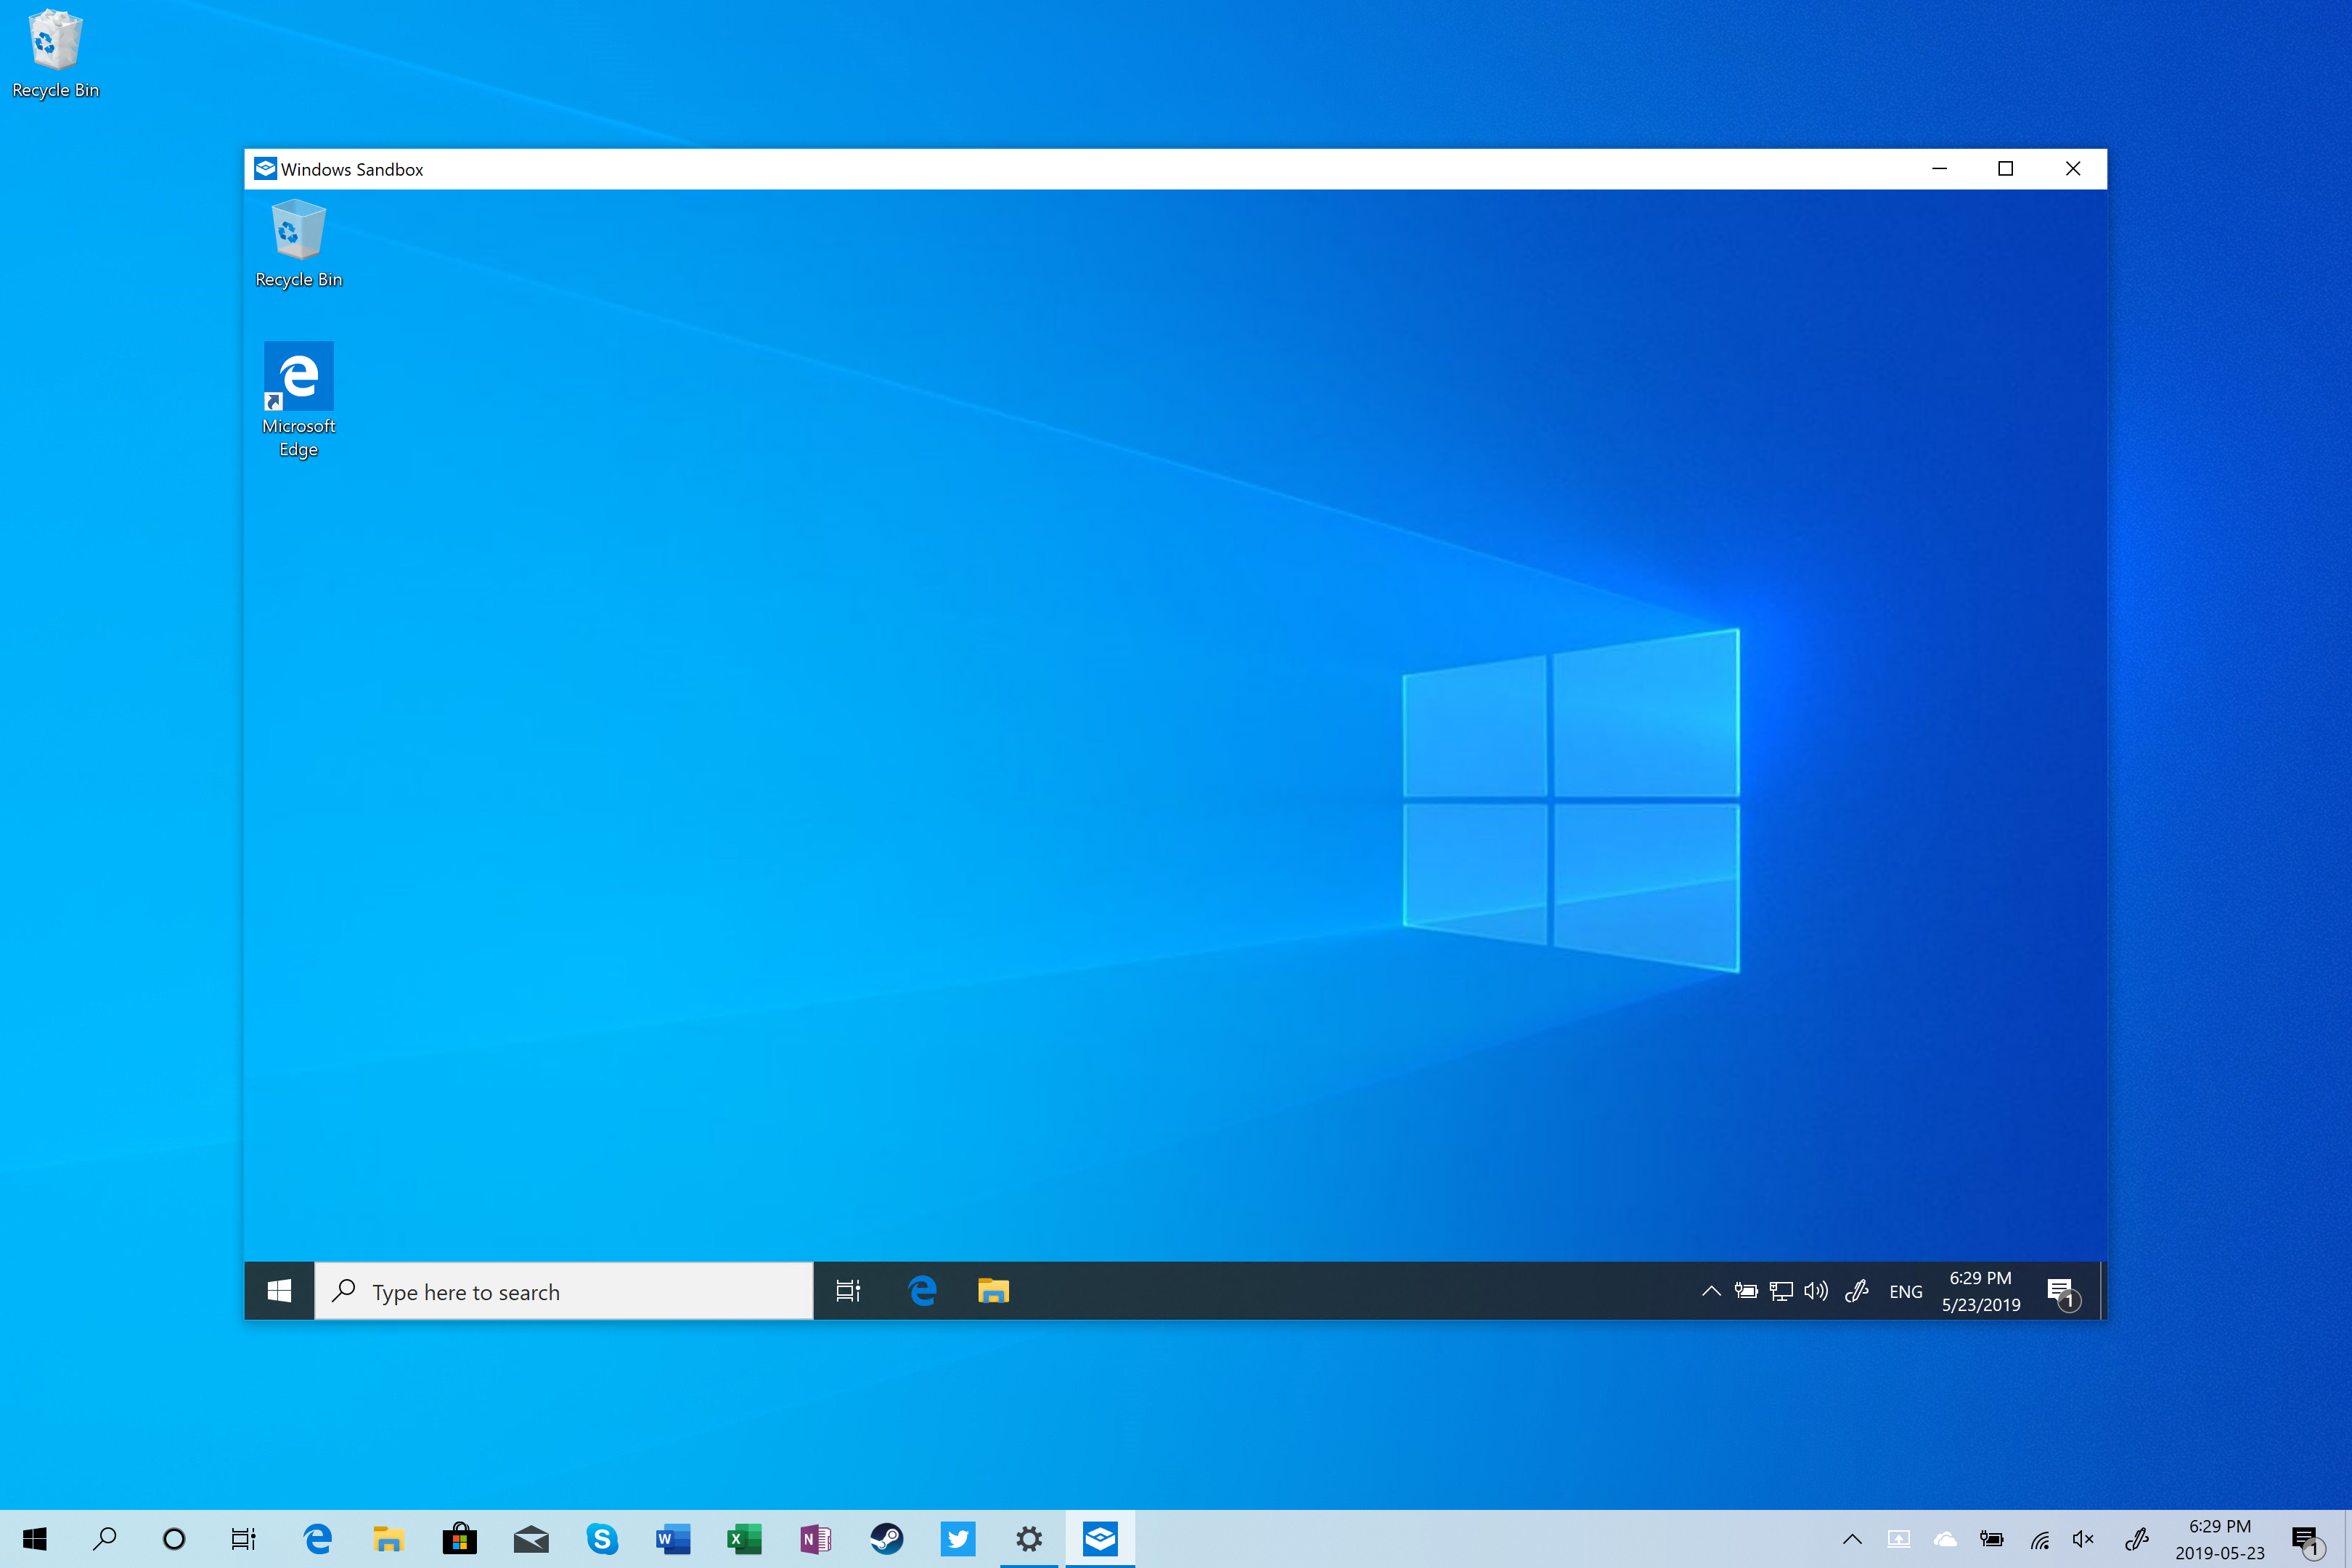 Wrapping Up - Windows 10 May 2019 Update Feature Focus